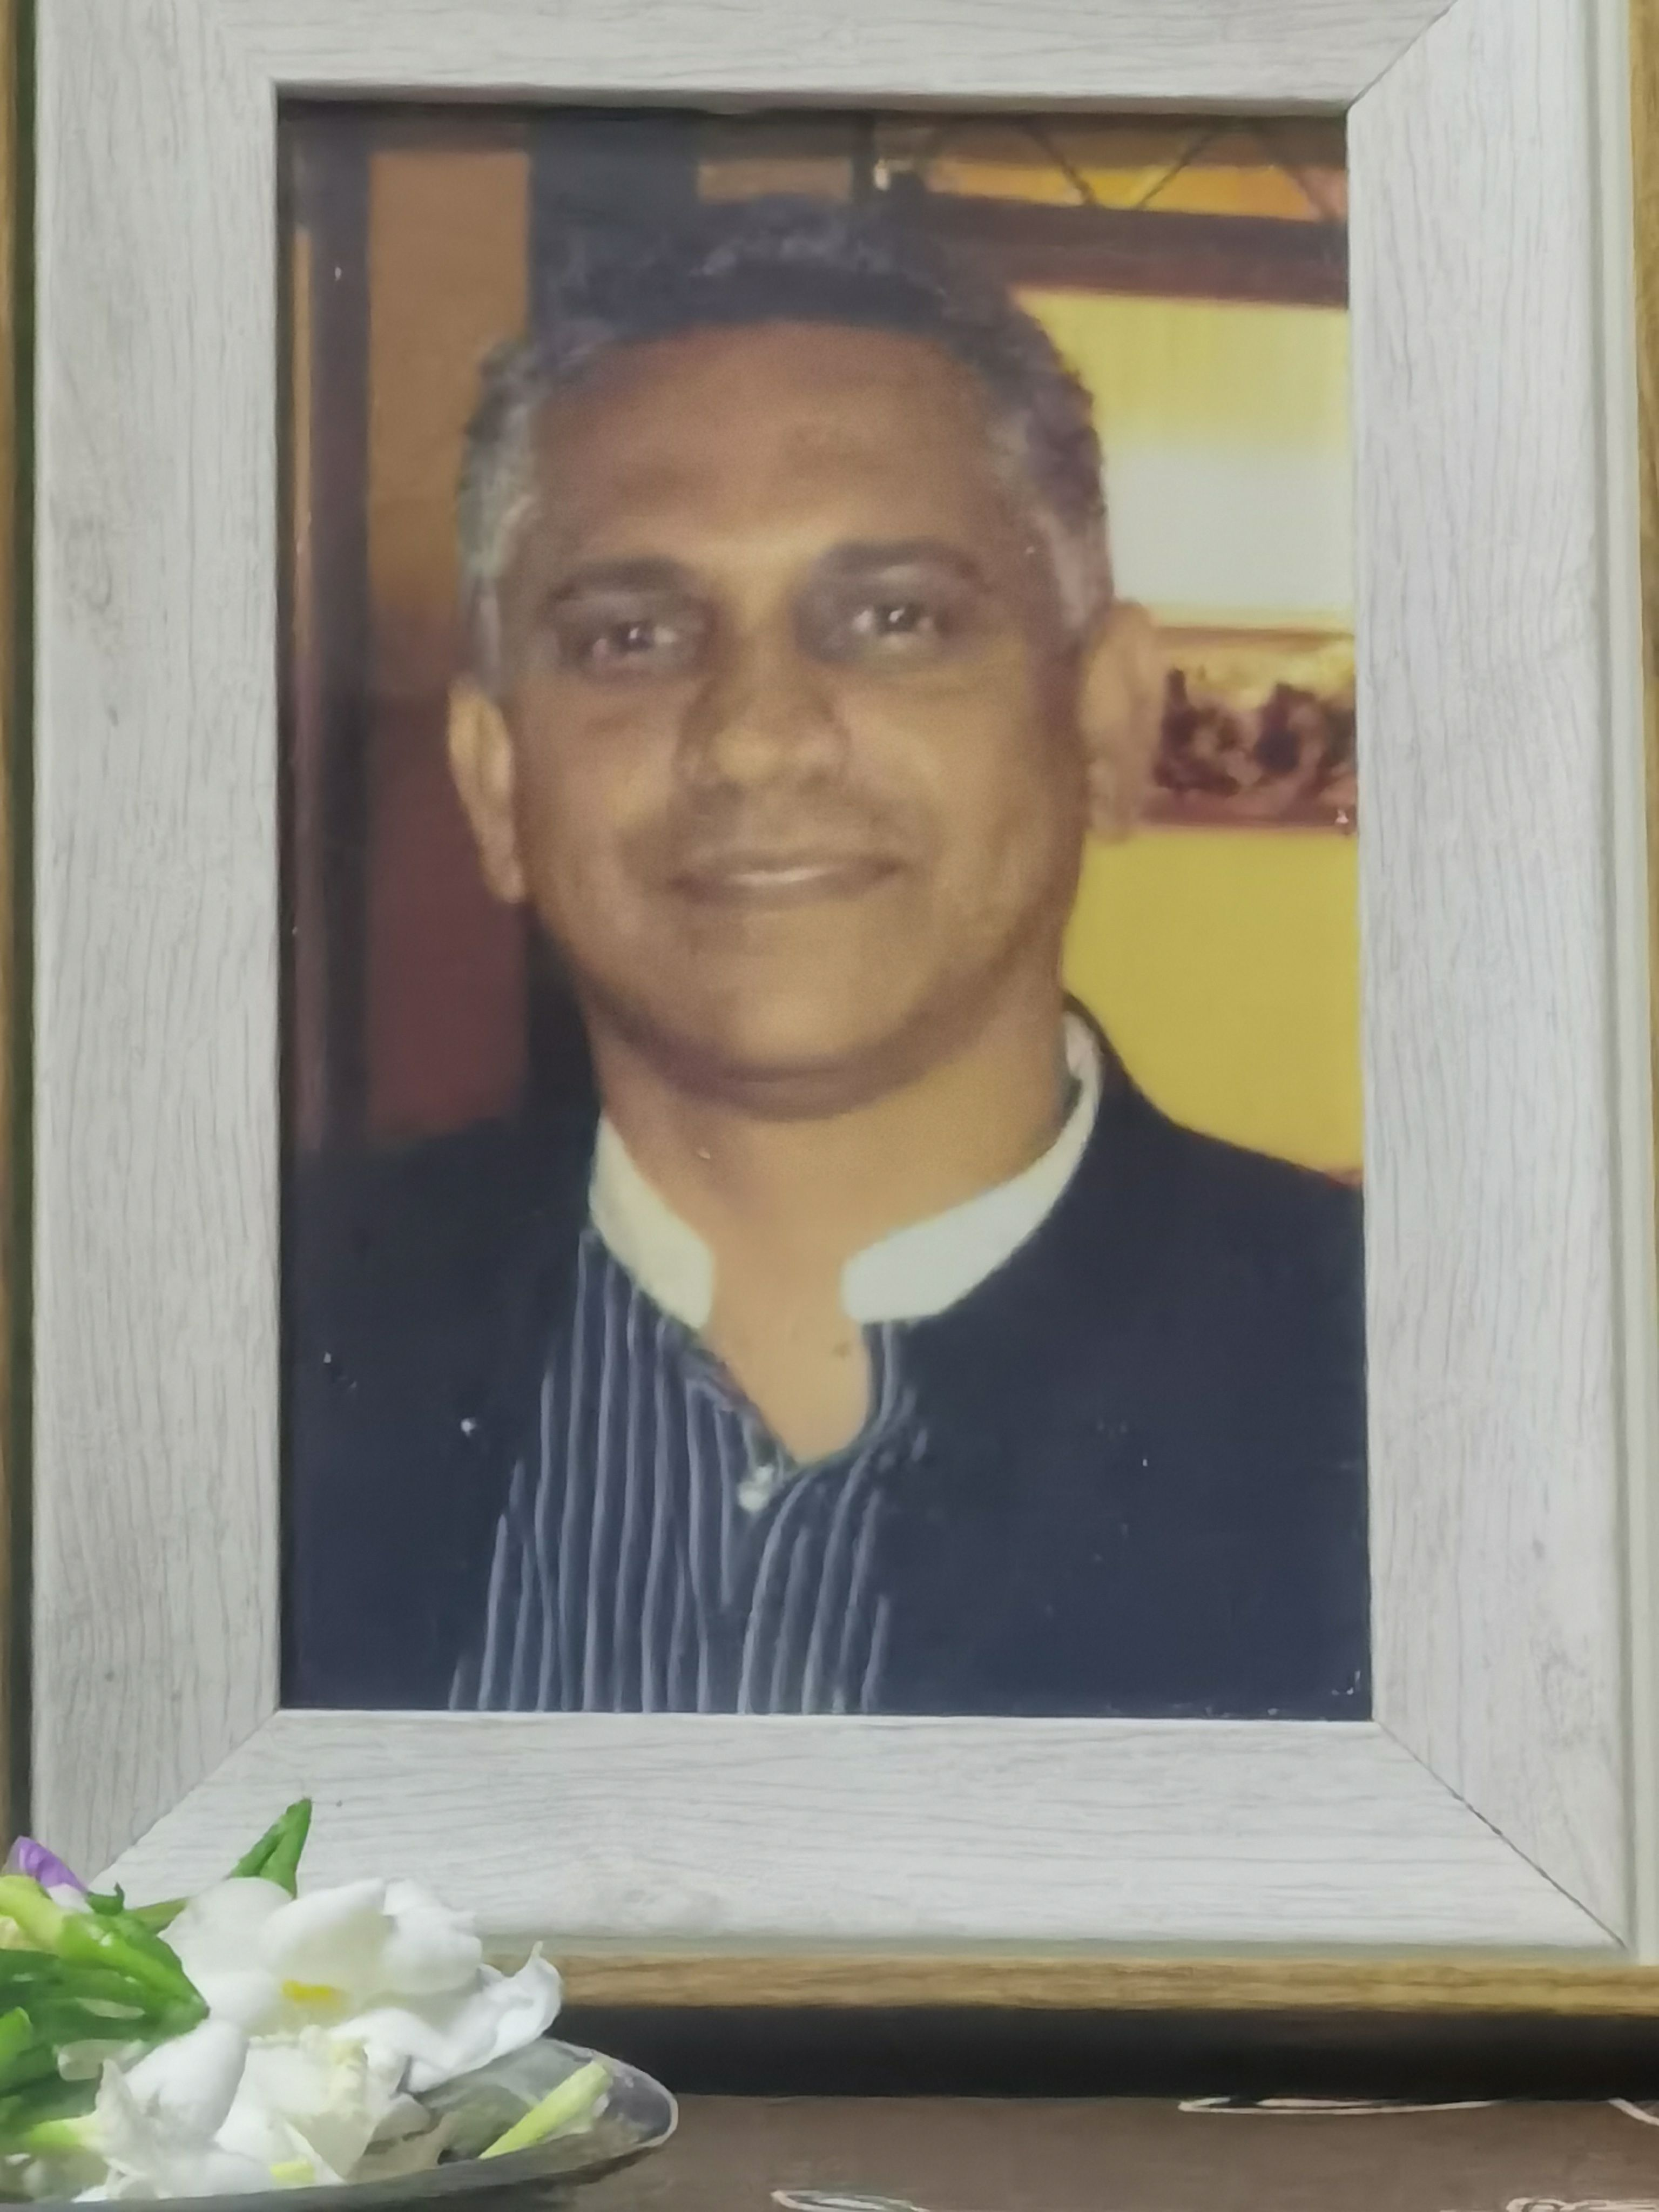 A framed picture of P Pramedasa Peeris. He is smiling, and has a dimple. He has short grey hair and a youthful face.